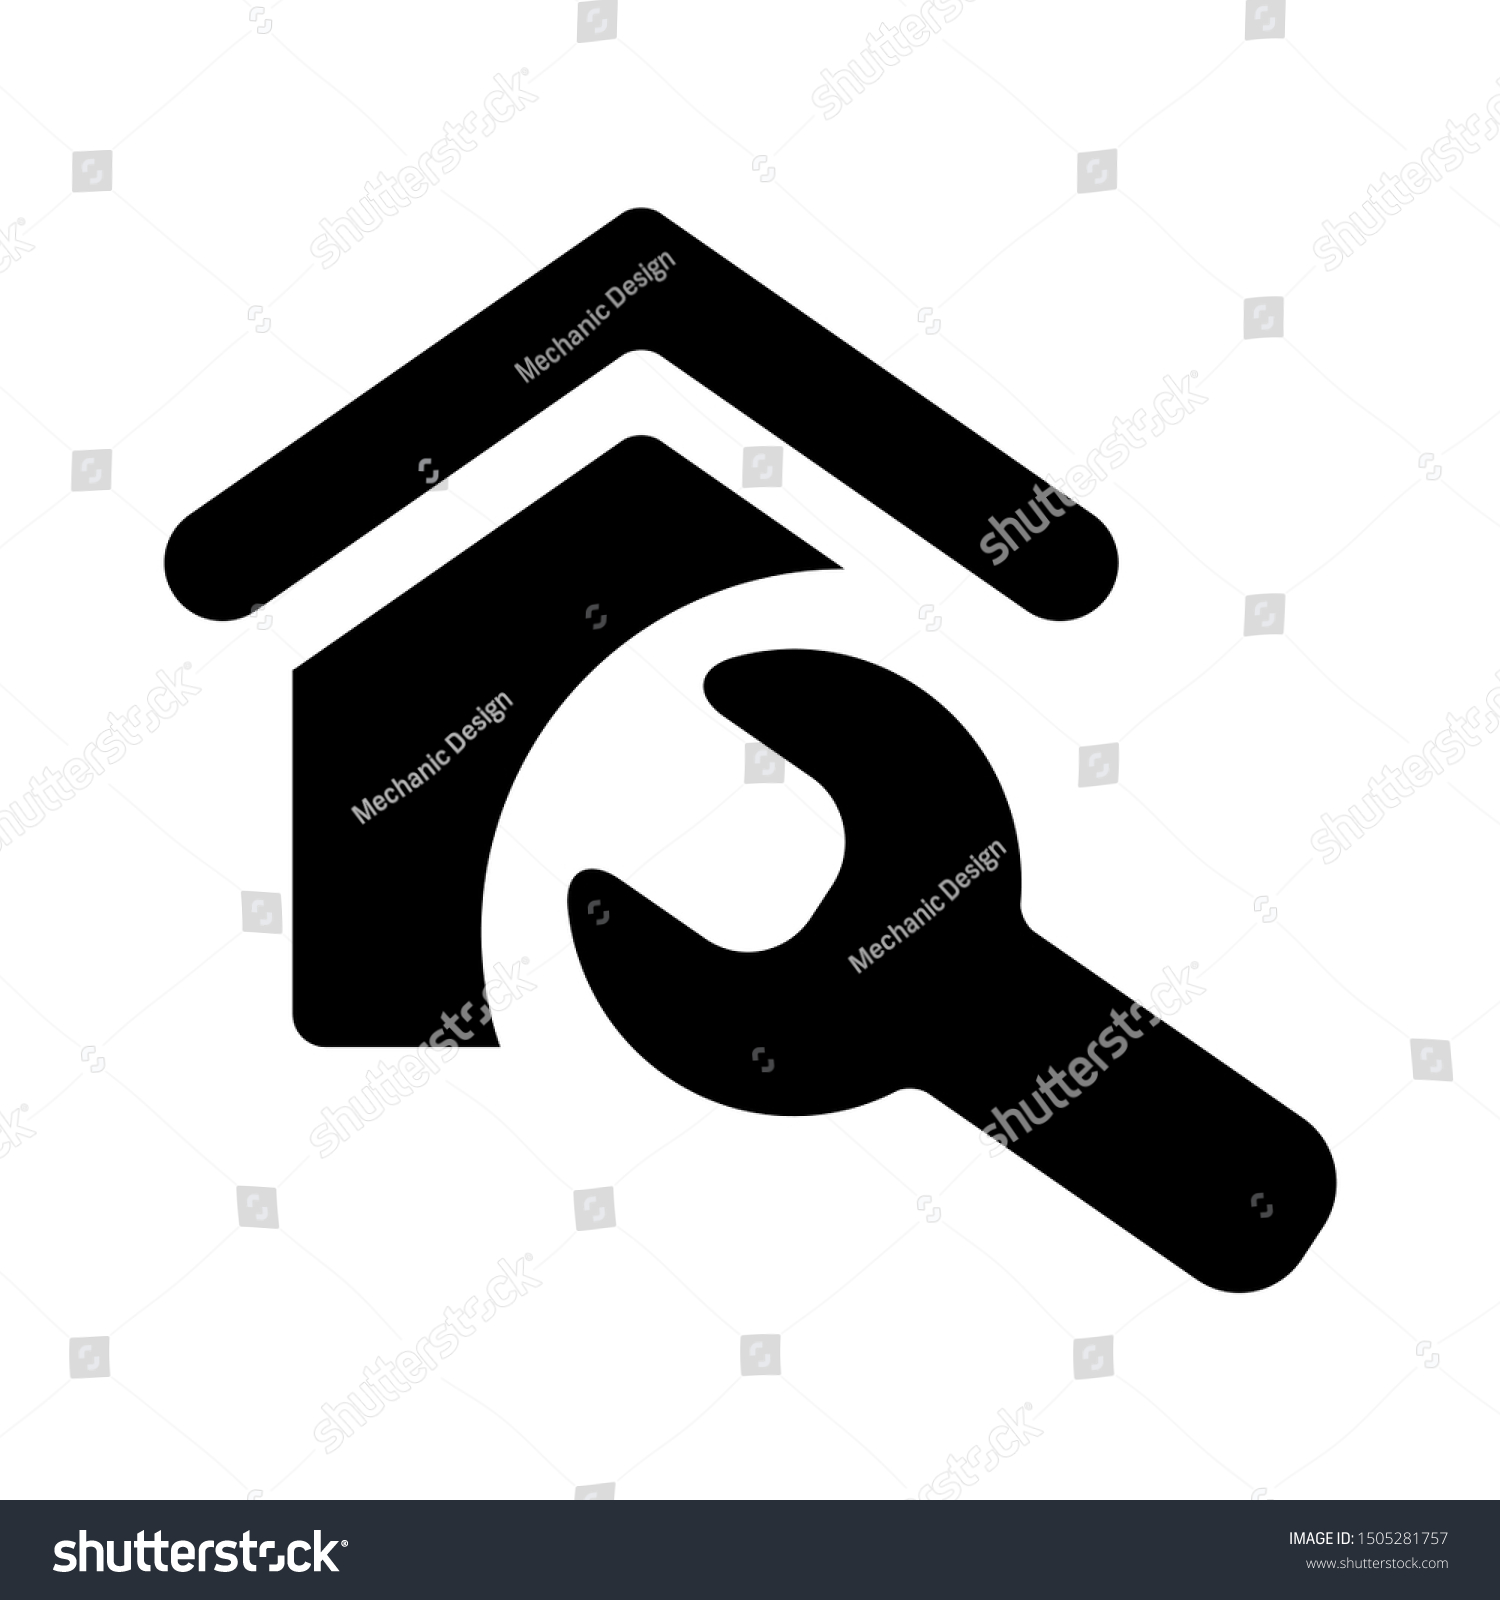 maintenance house icon - From property, commercial house and real estate icons, mortgage icons